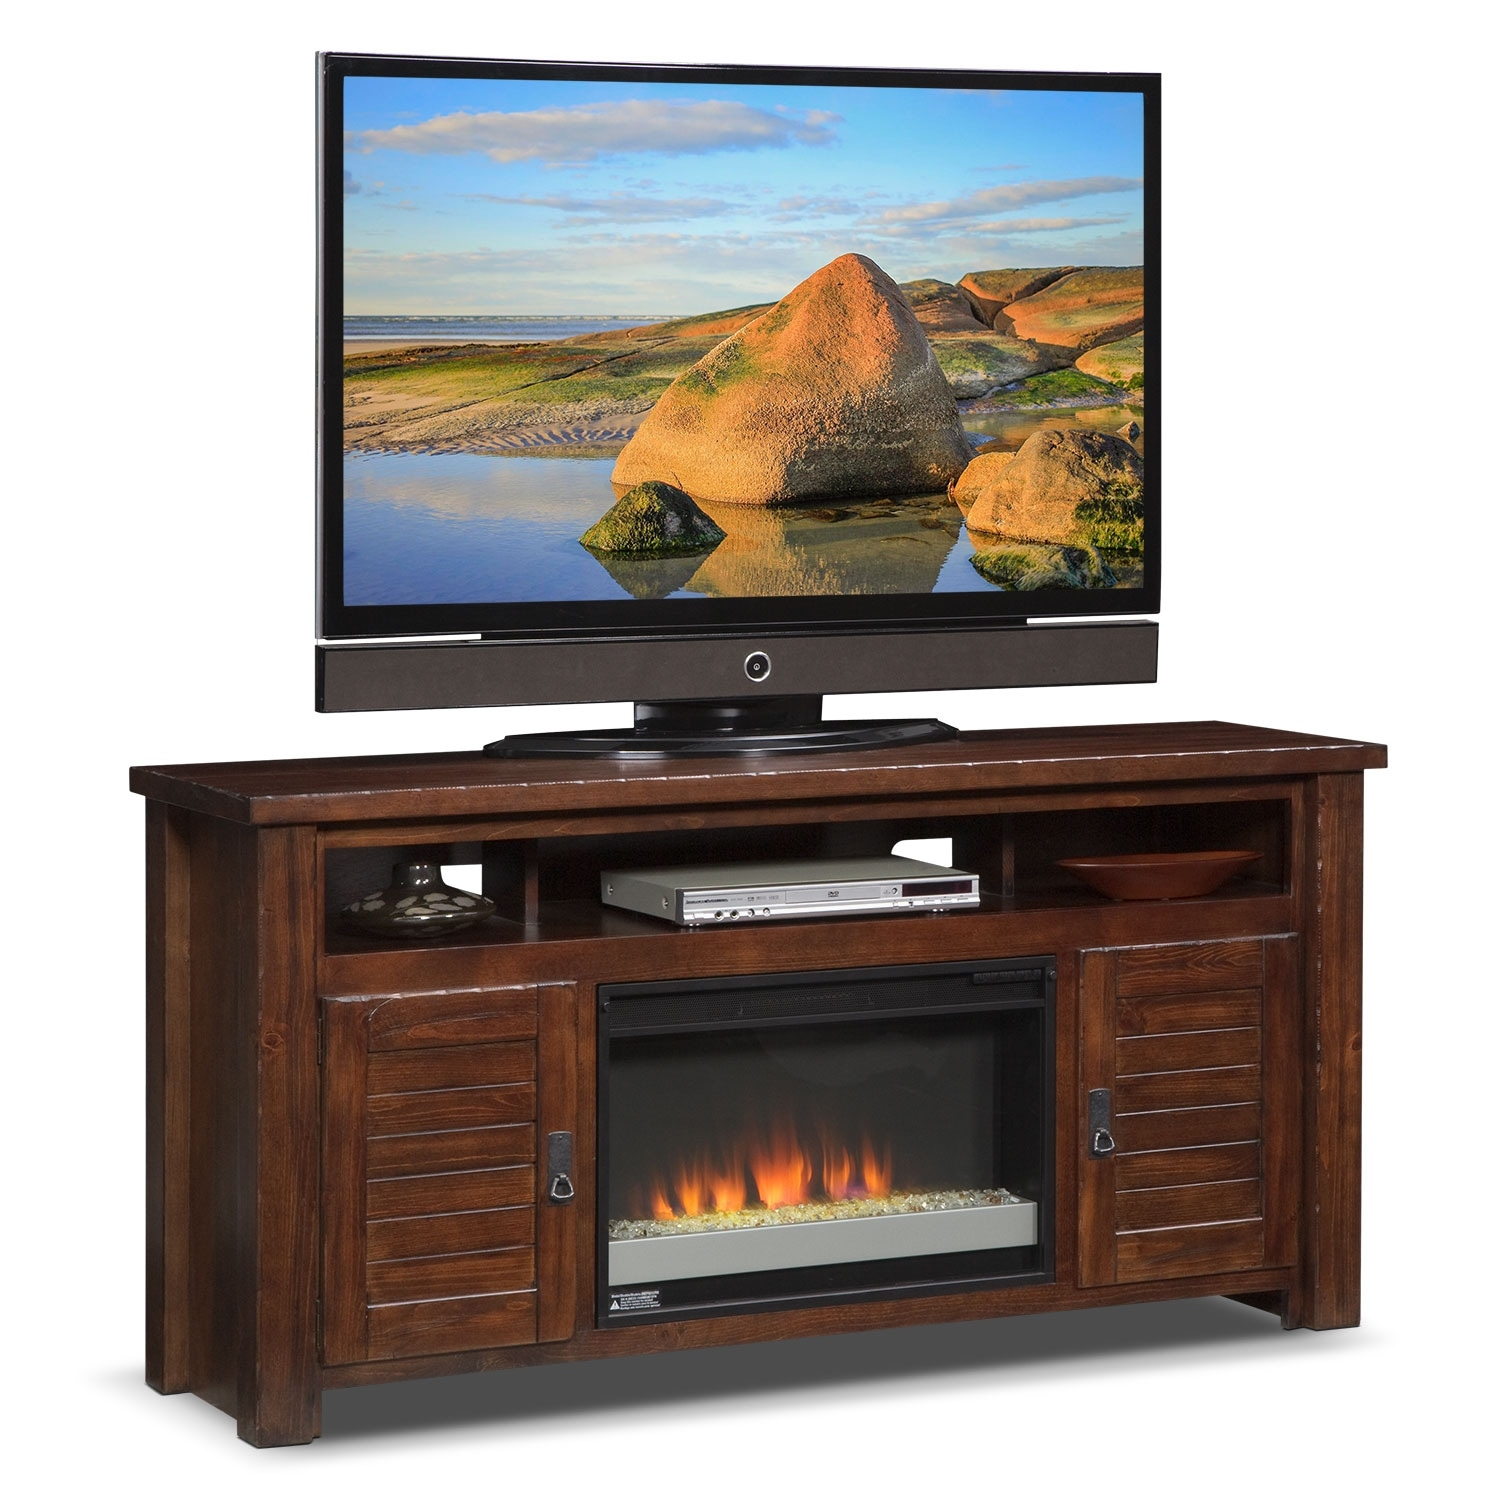 "Prairie 64"" Fireplace TV Stand with Contemporary Insert - Mesquite Pine"